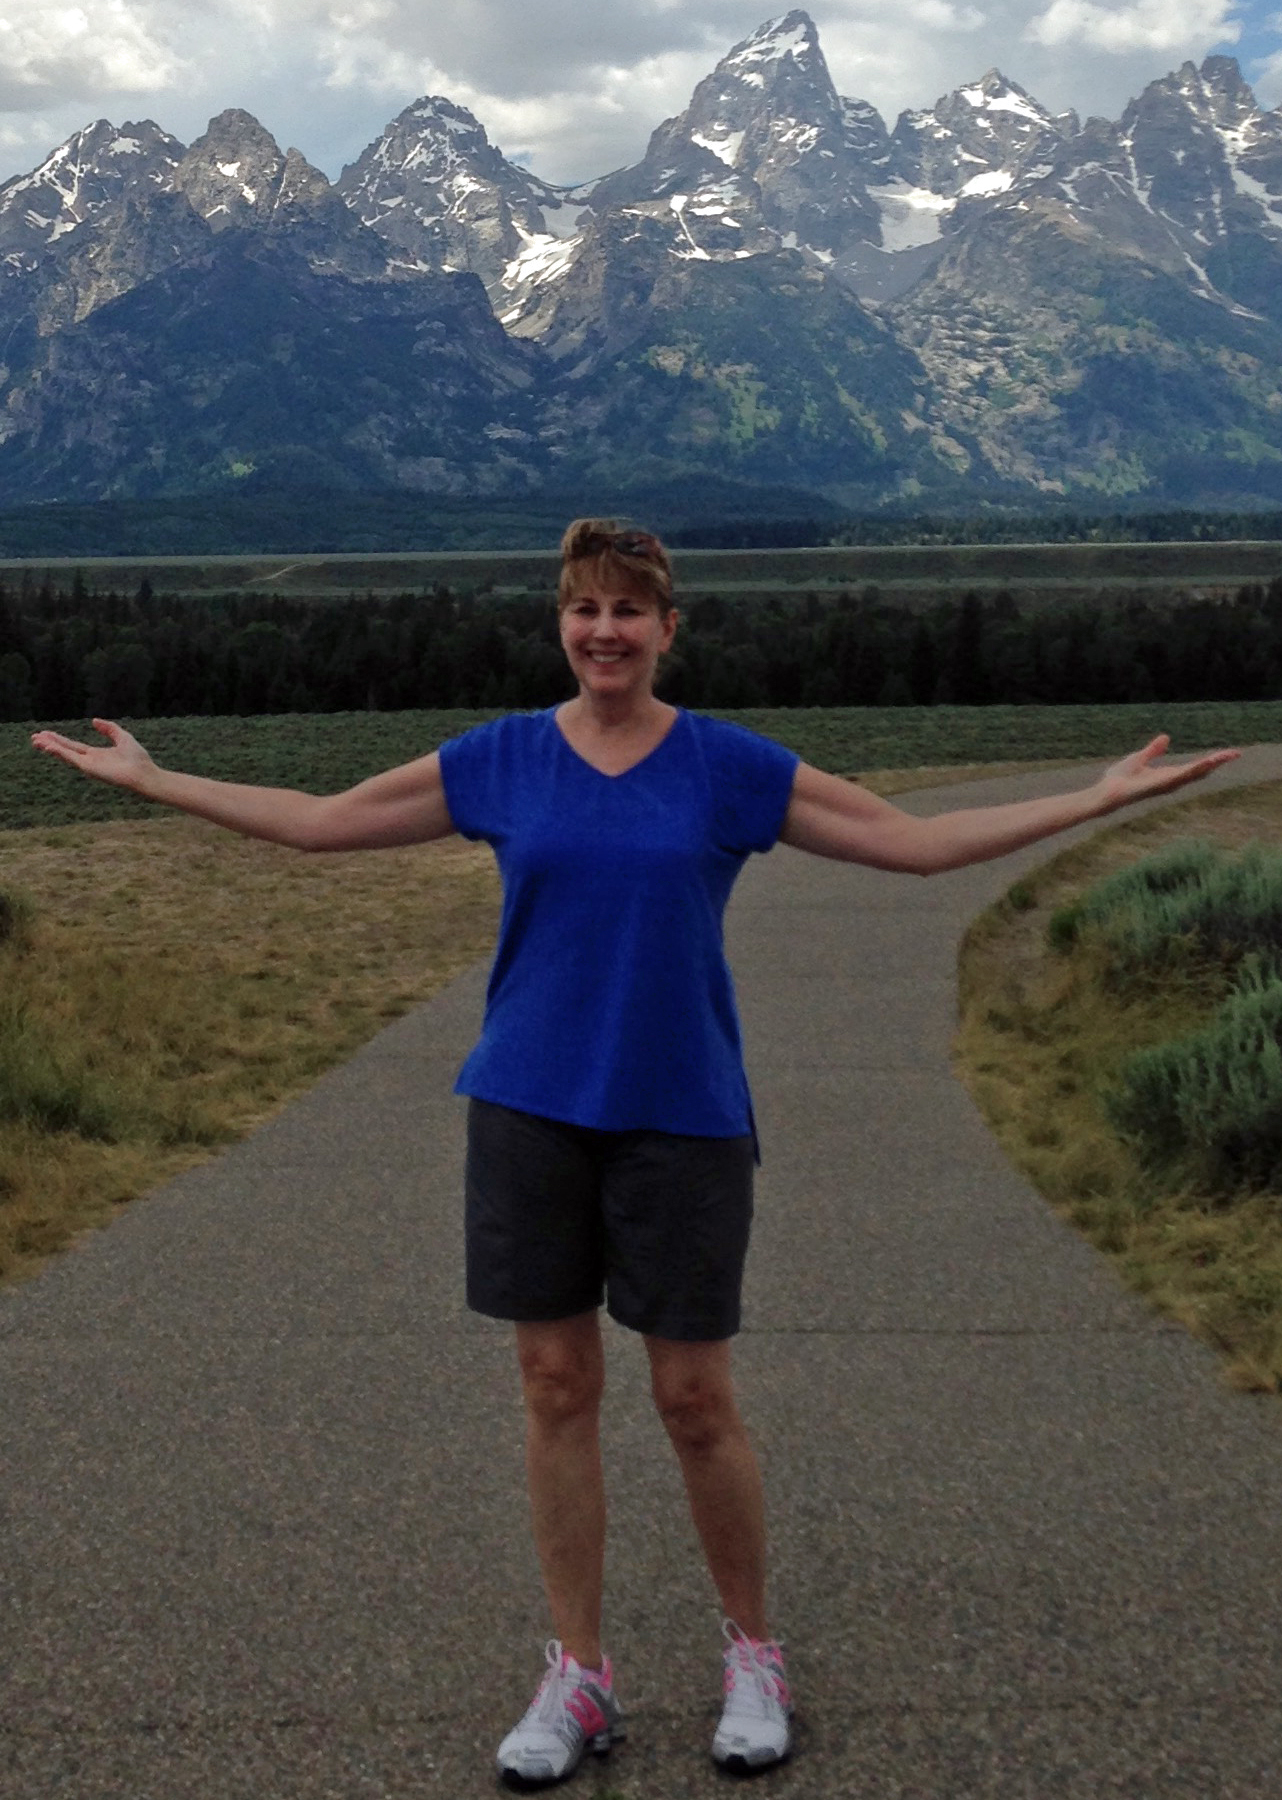 Presenting Grand Teton National Park!